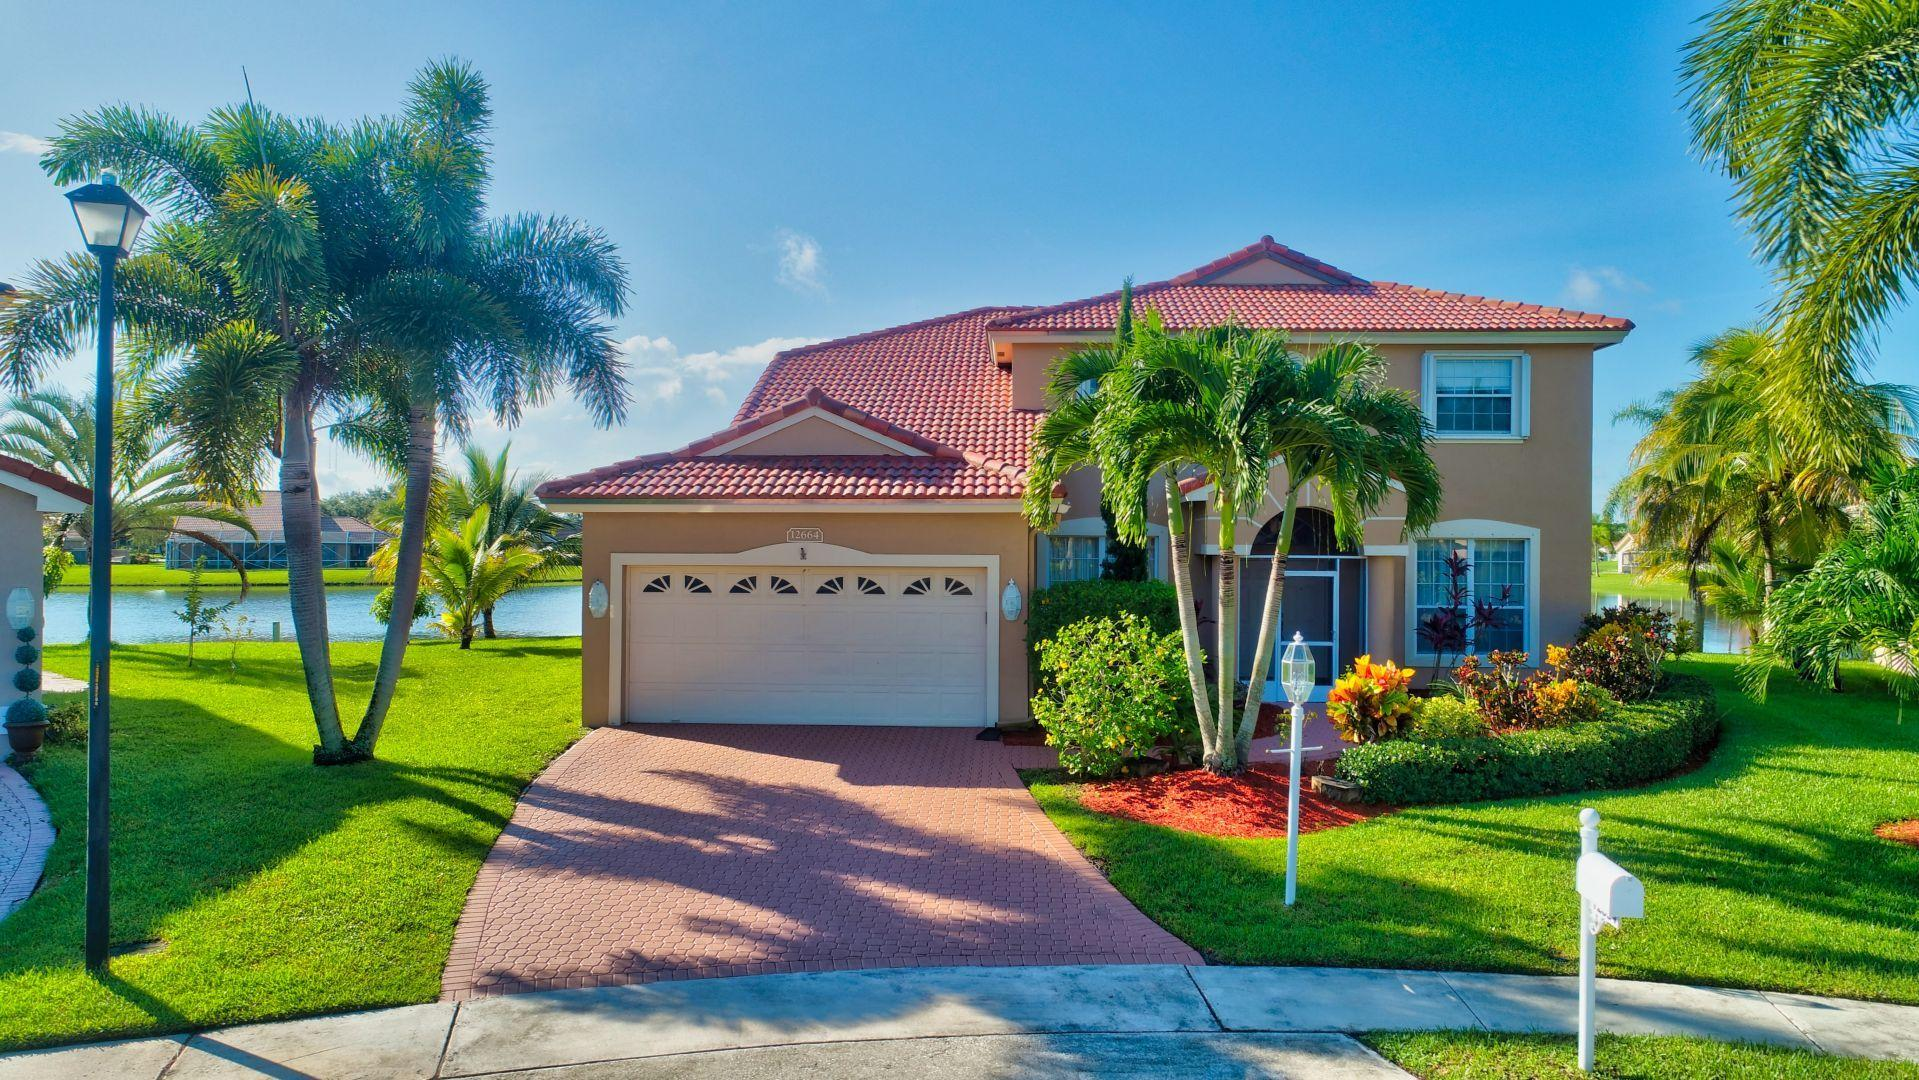 Home for sale in BOCA WINDS Boca Raton Florida